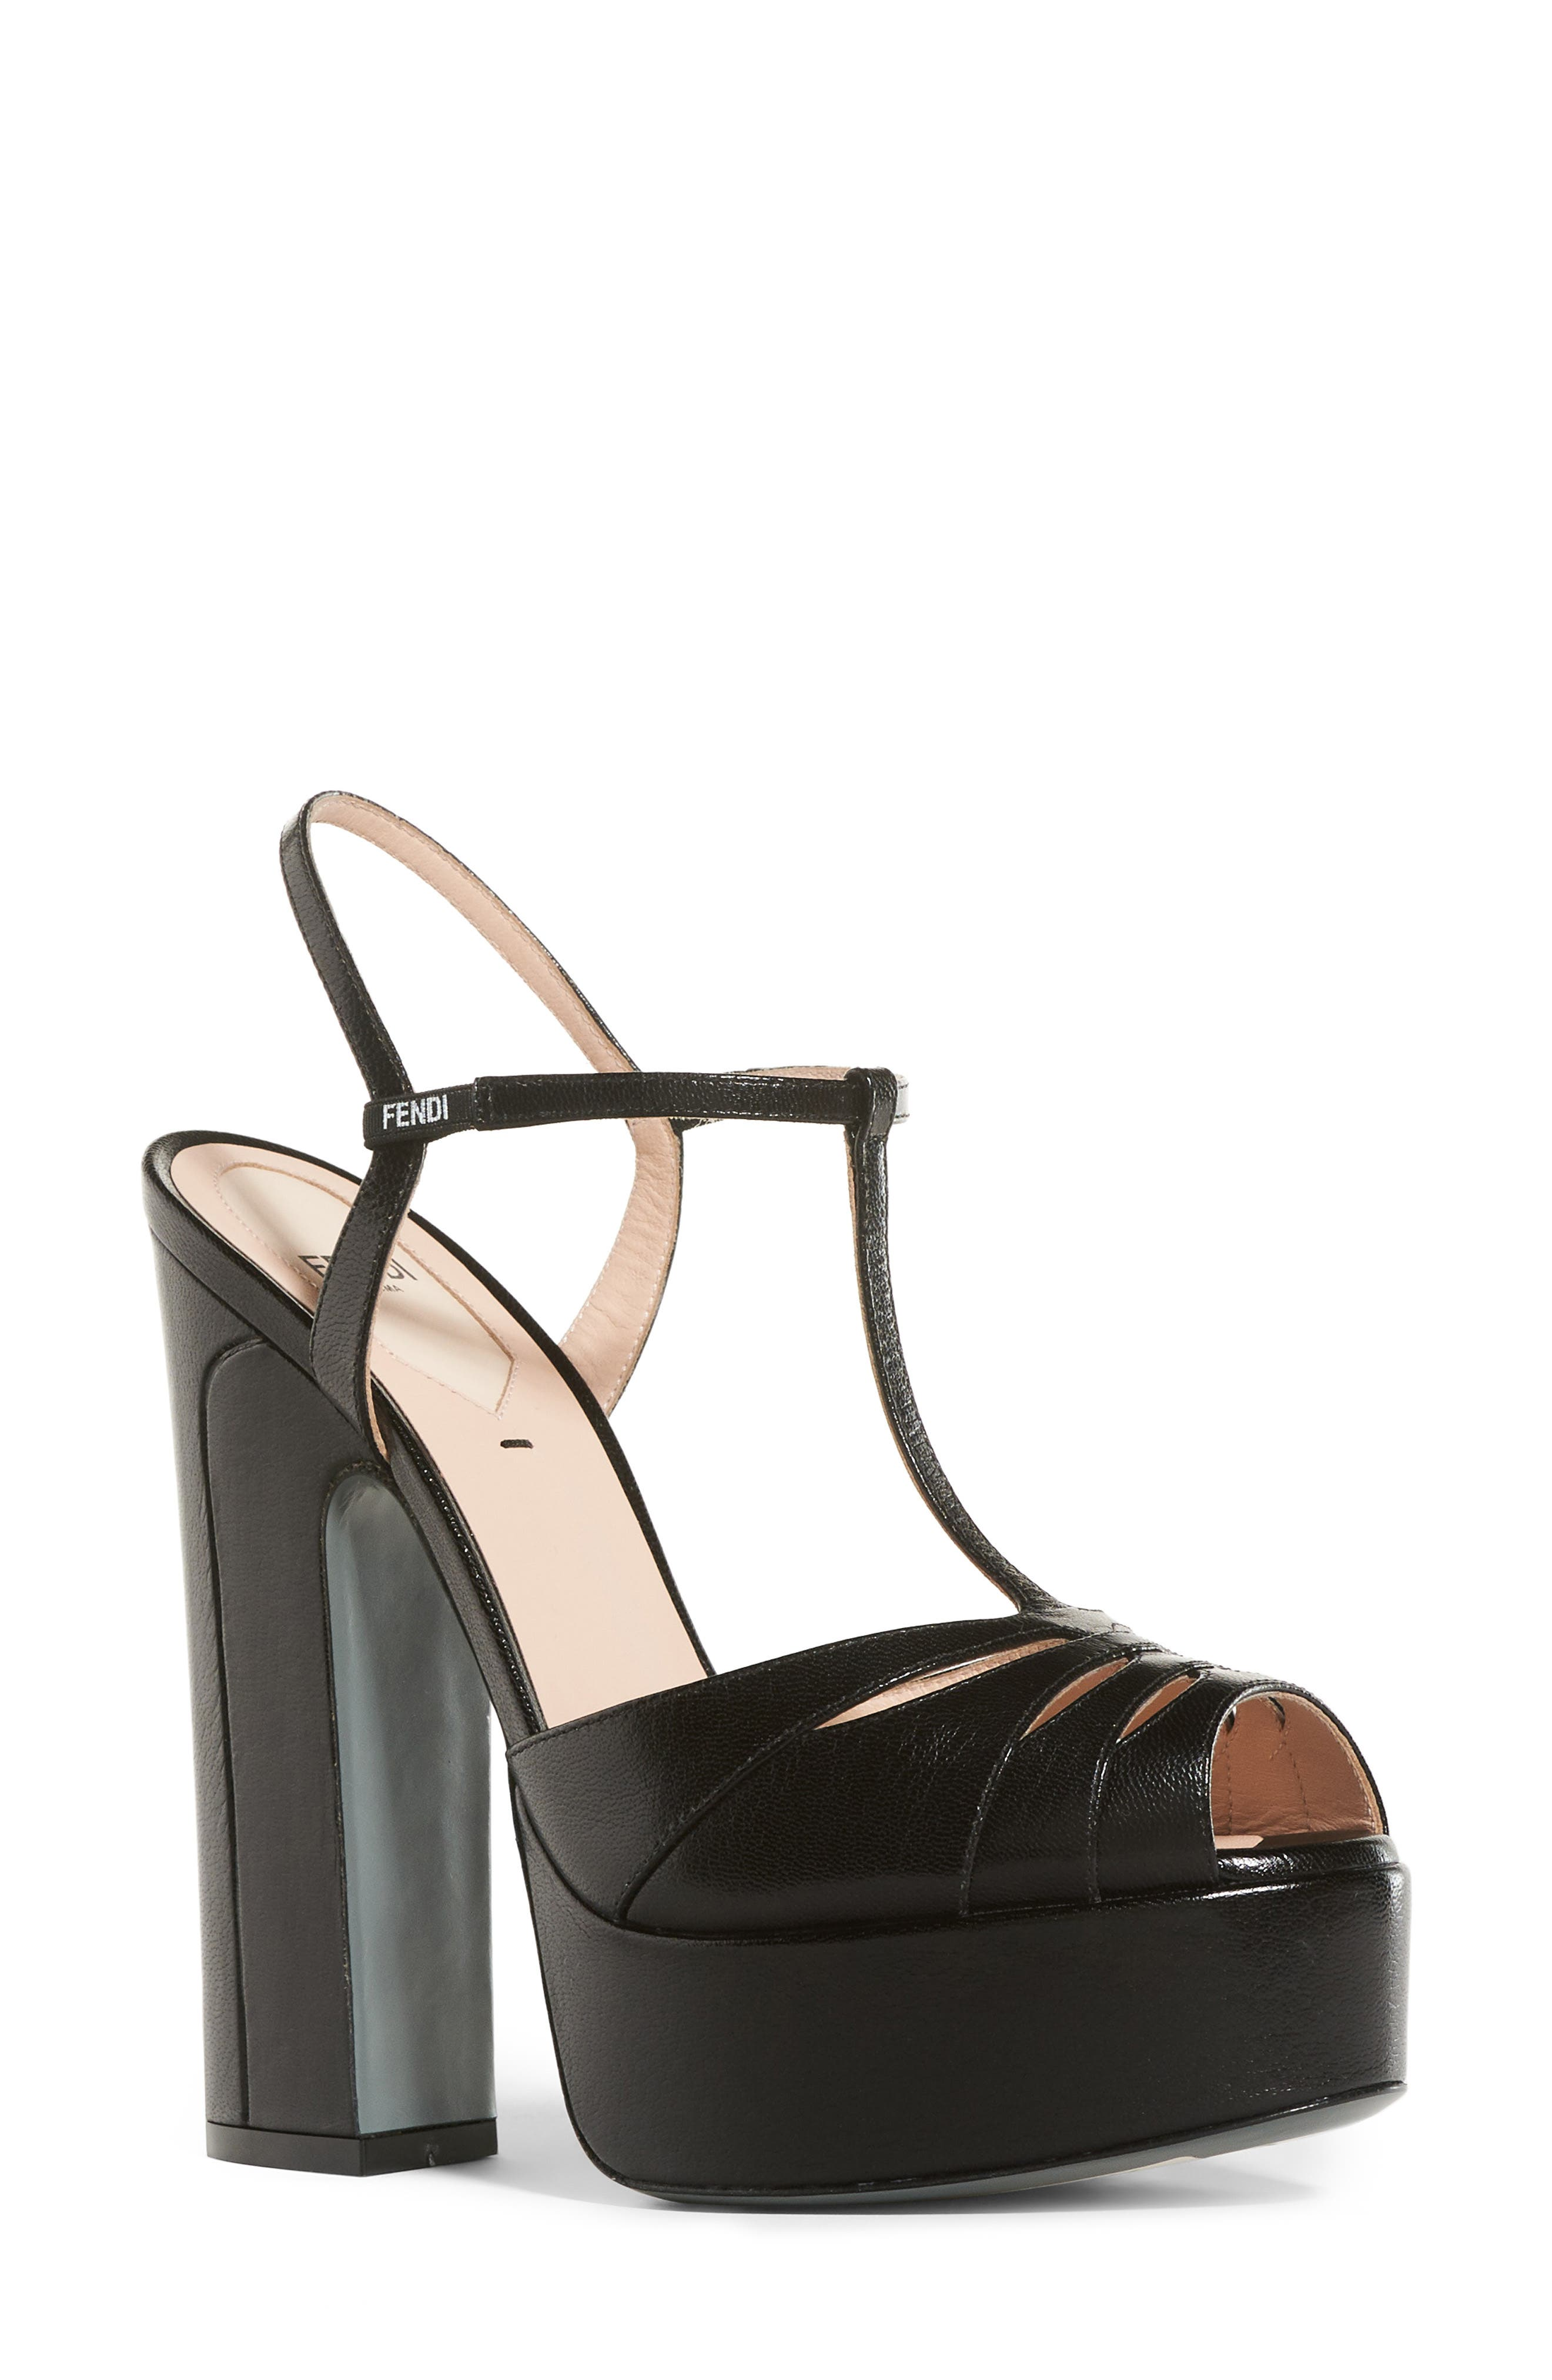 Duo Platform Sandal,                         Main,                         color, 003